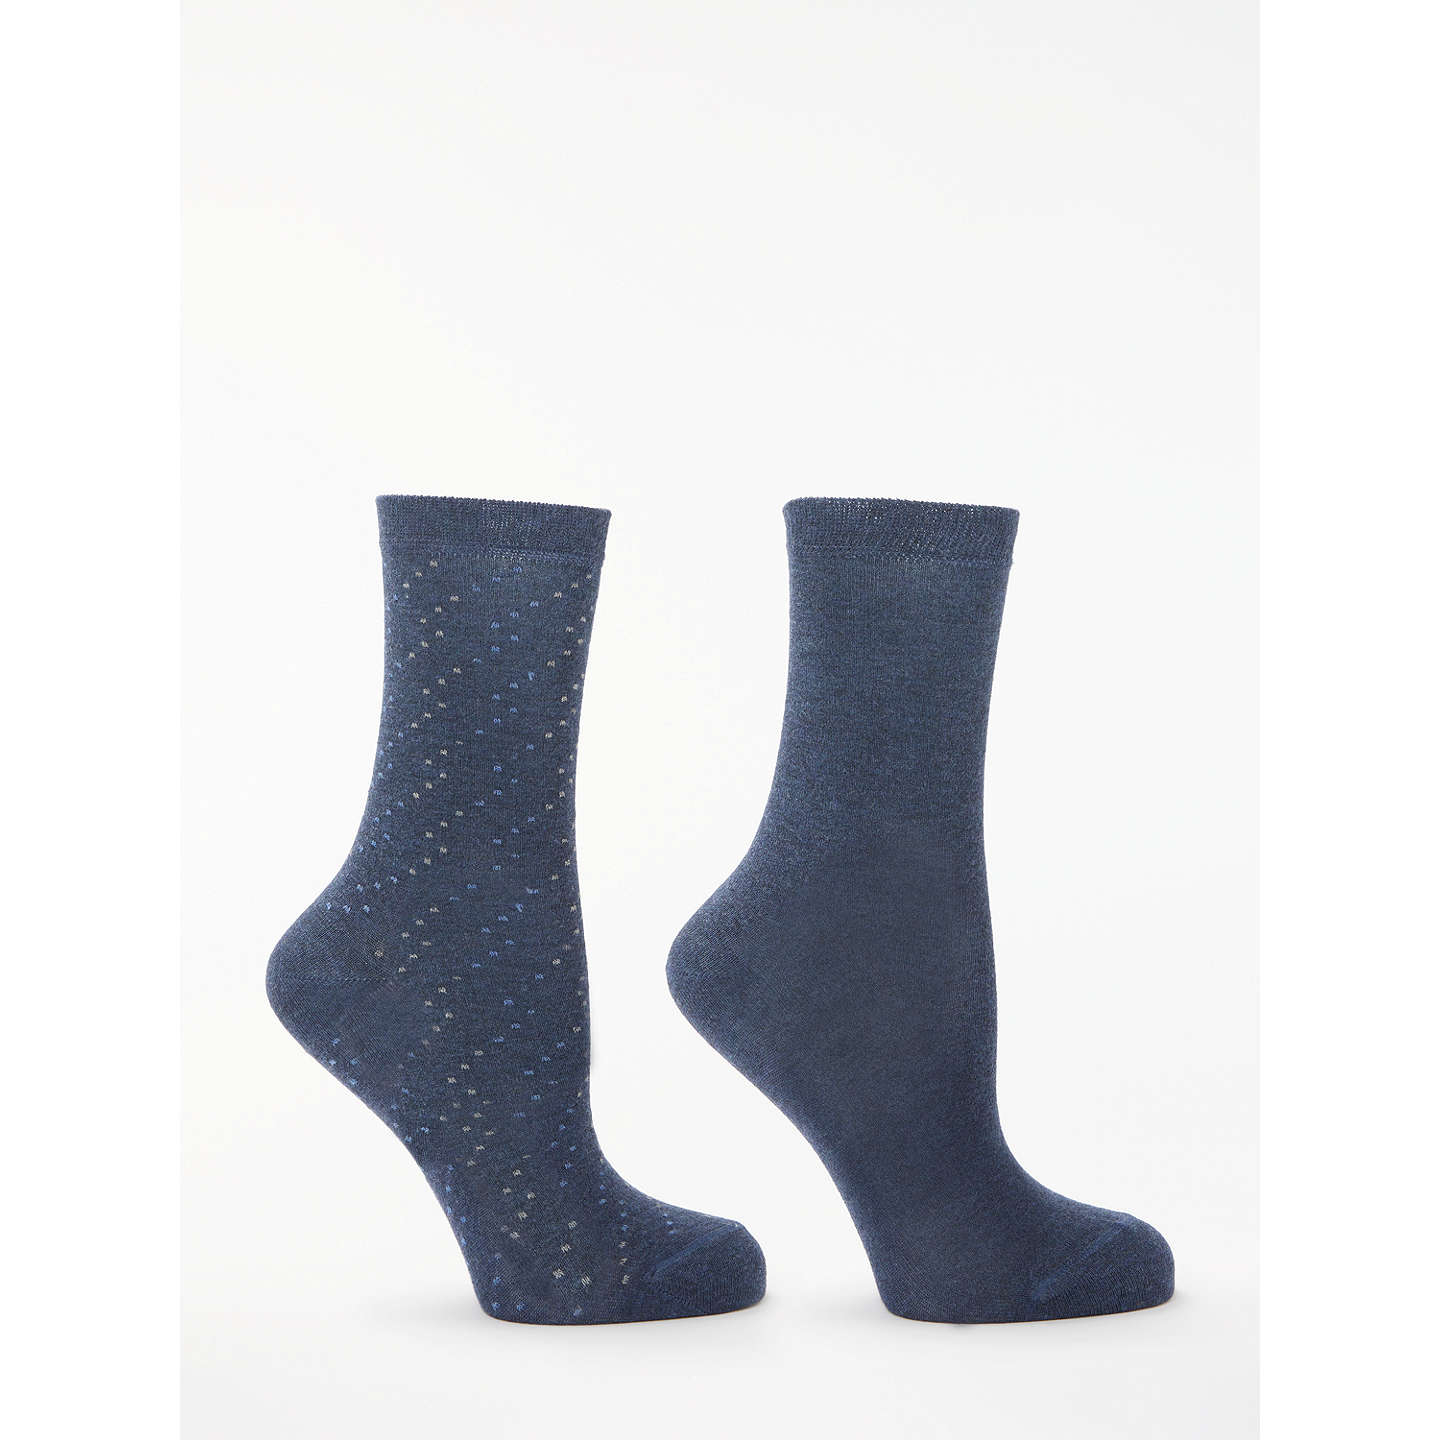 BuyJohn Lewis Solid Colour and Spot Ankle Socks, Pack of 2, Navy Online at johnlewis.com